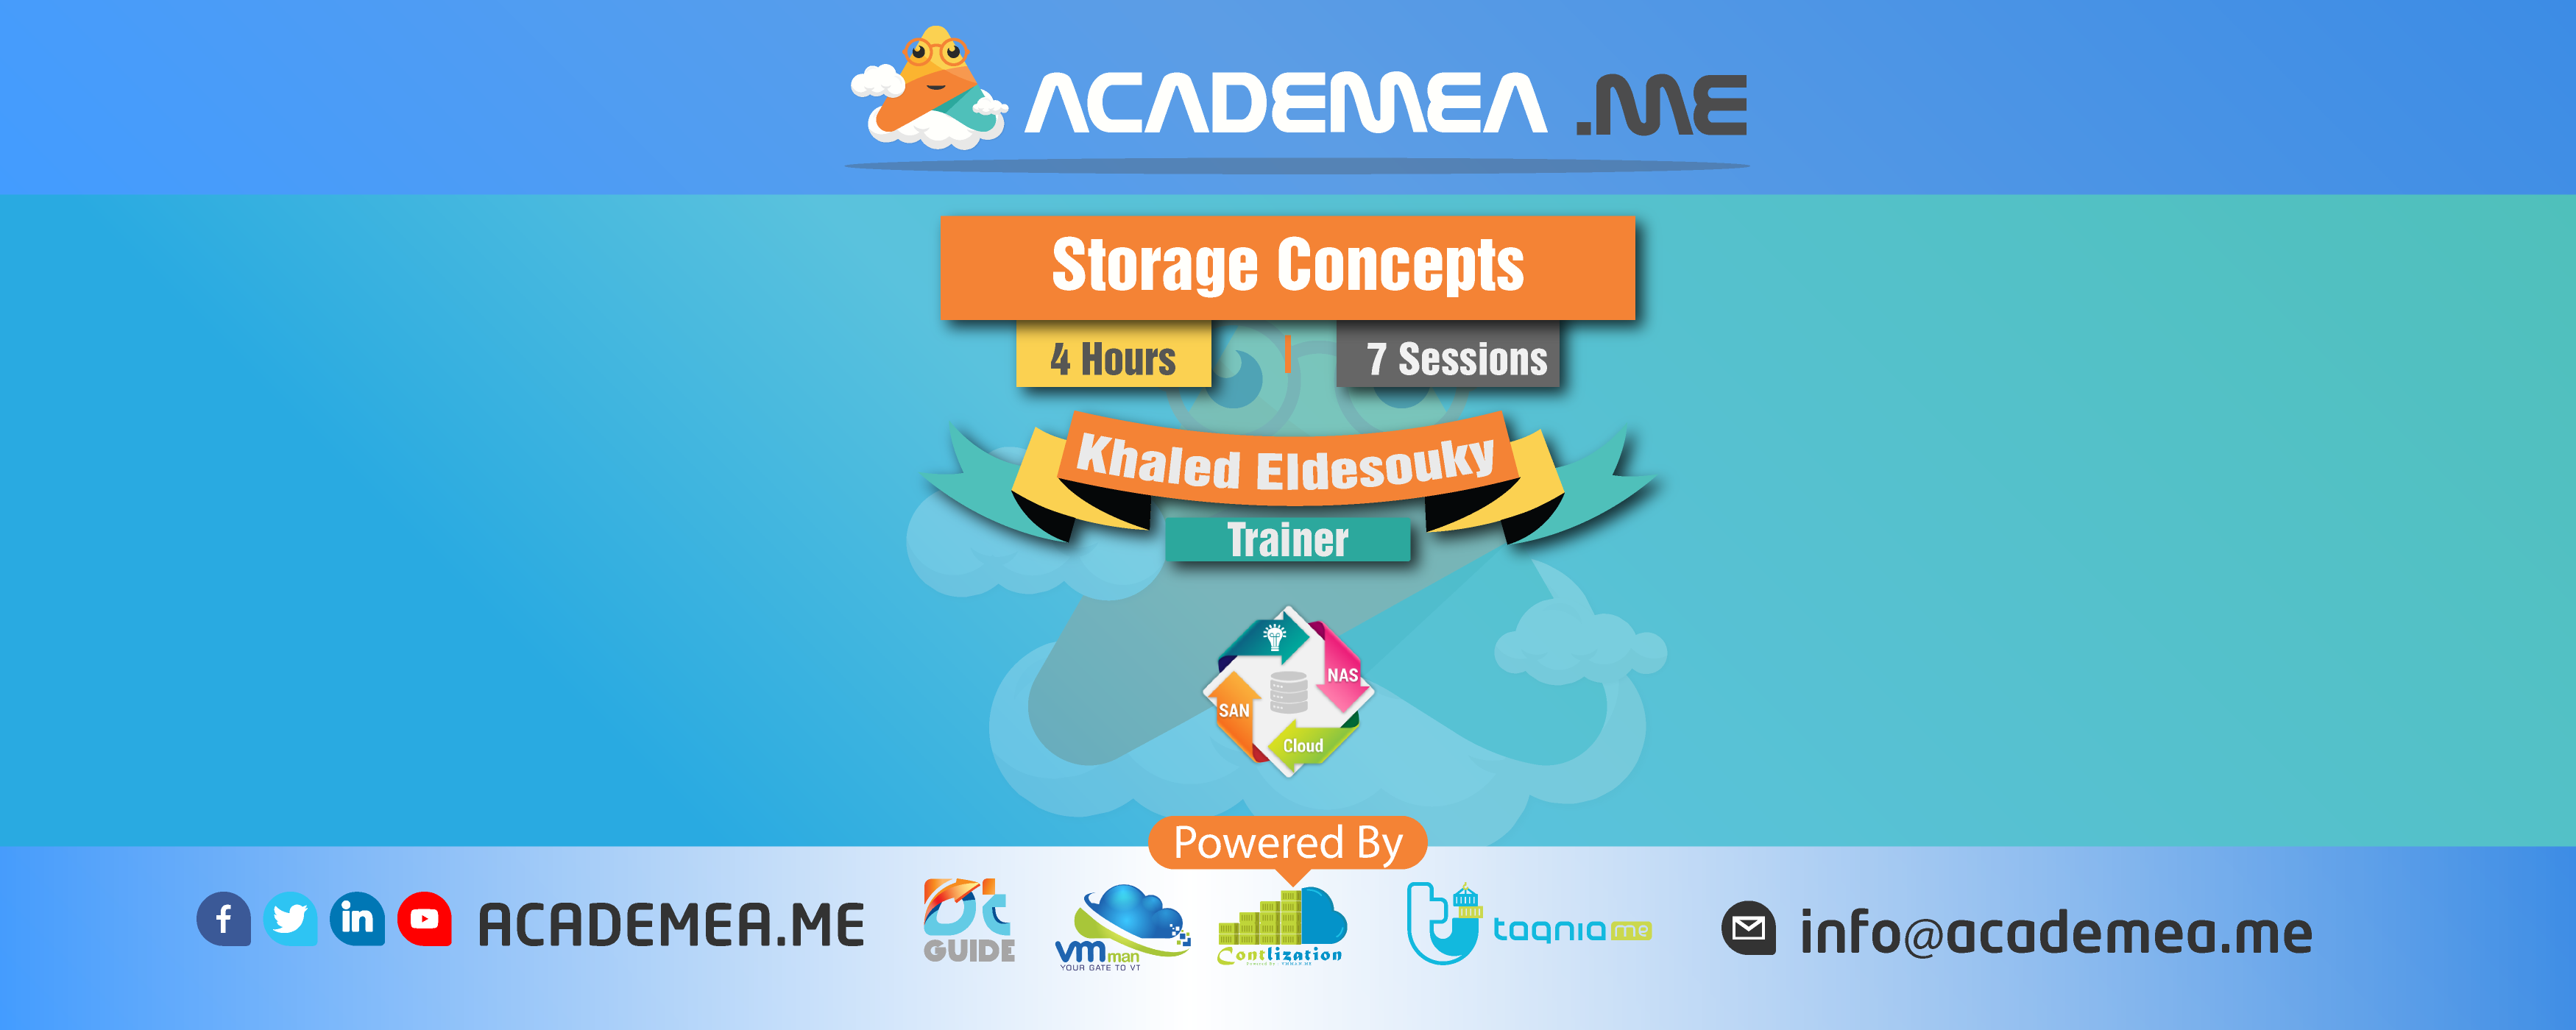 Storage Concepts Course